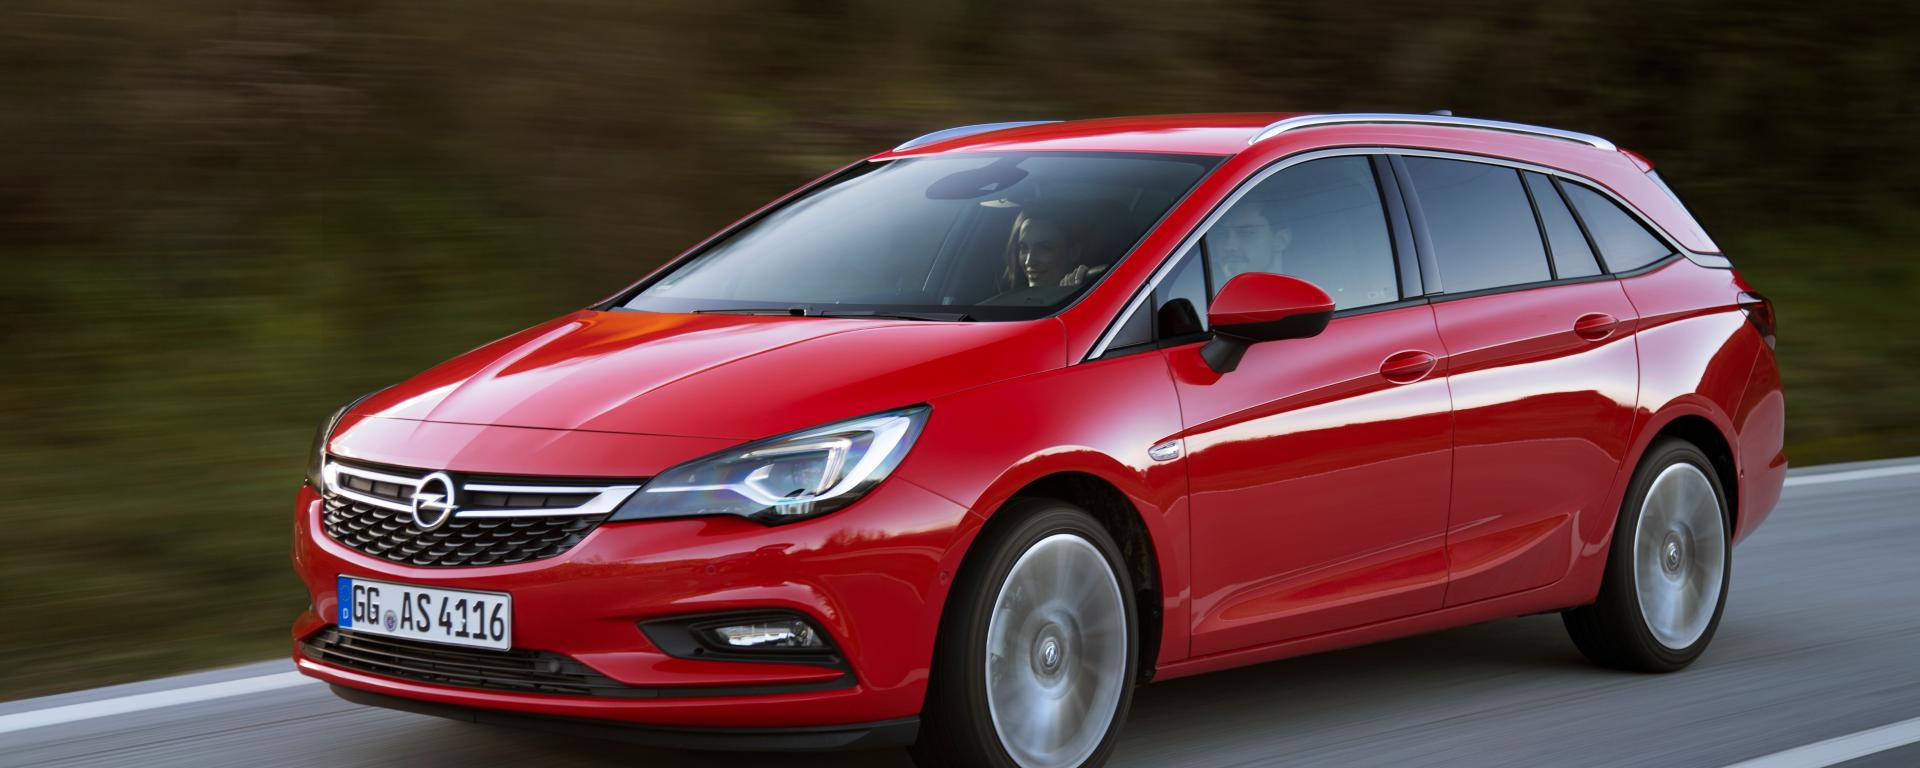 Opel Astra Sports Tourer leasen